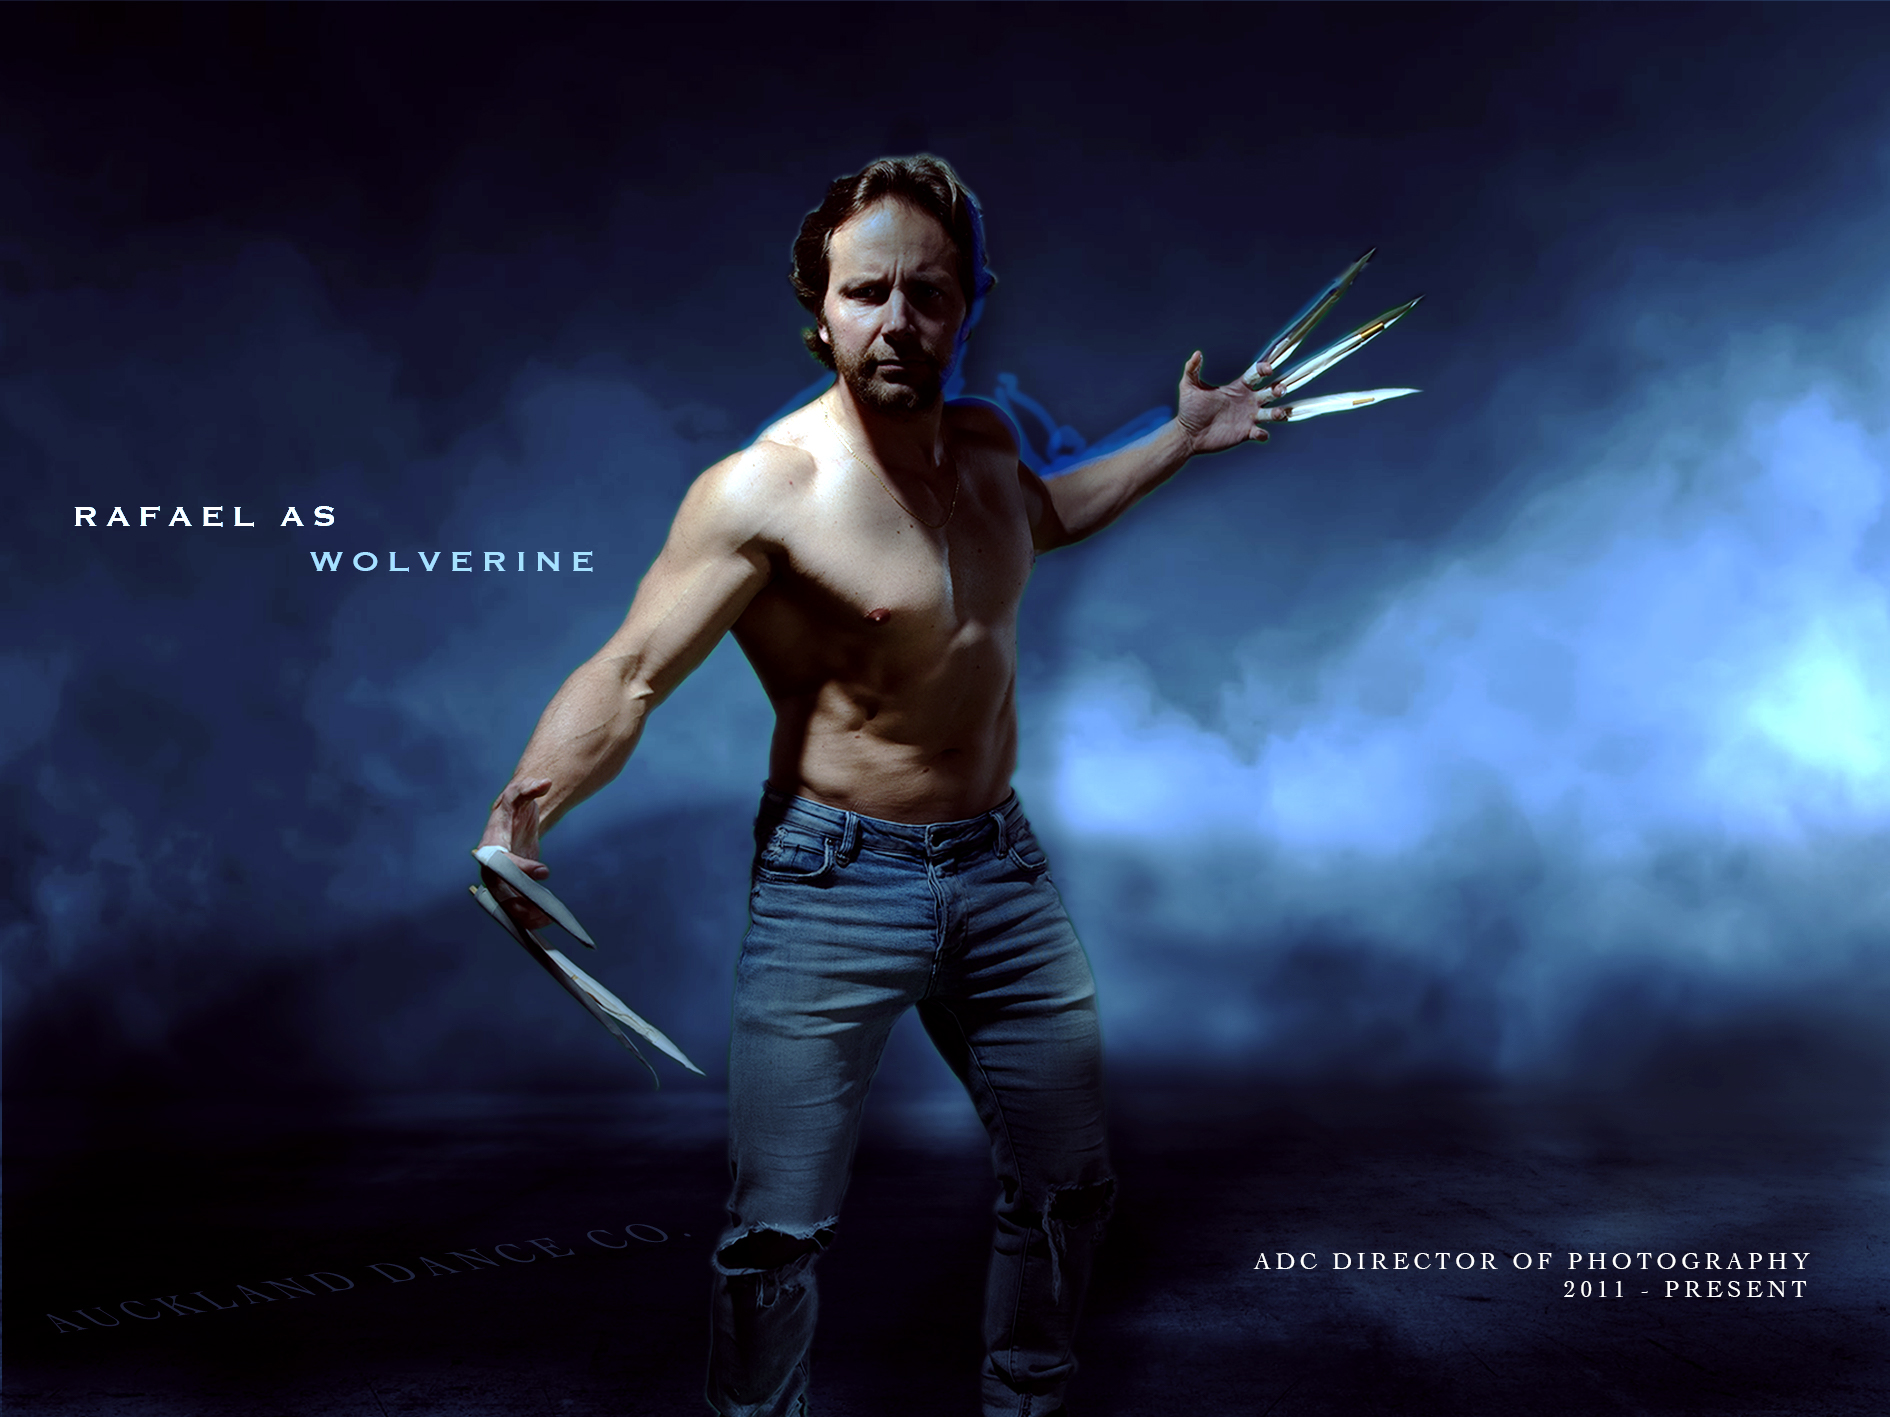 RAFAEL (ADC D.O.P) as WOLVERINE